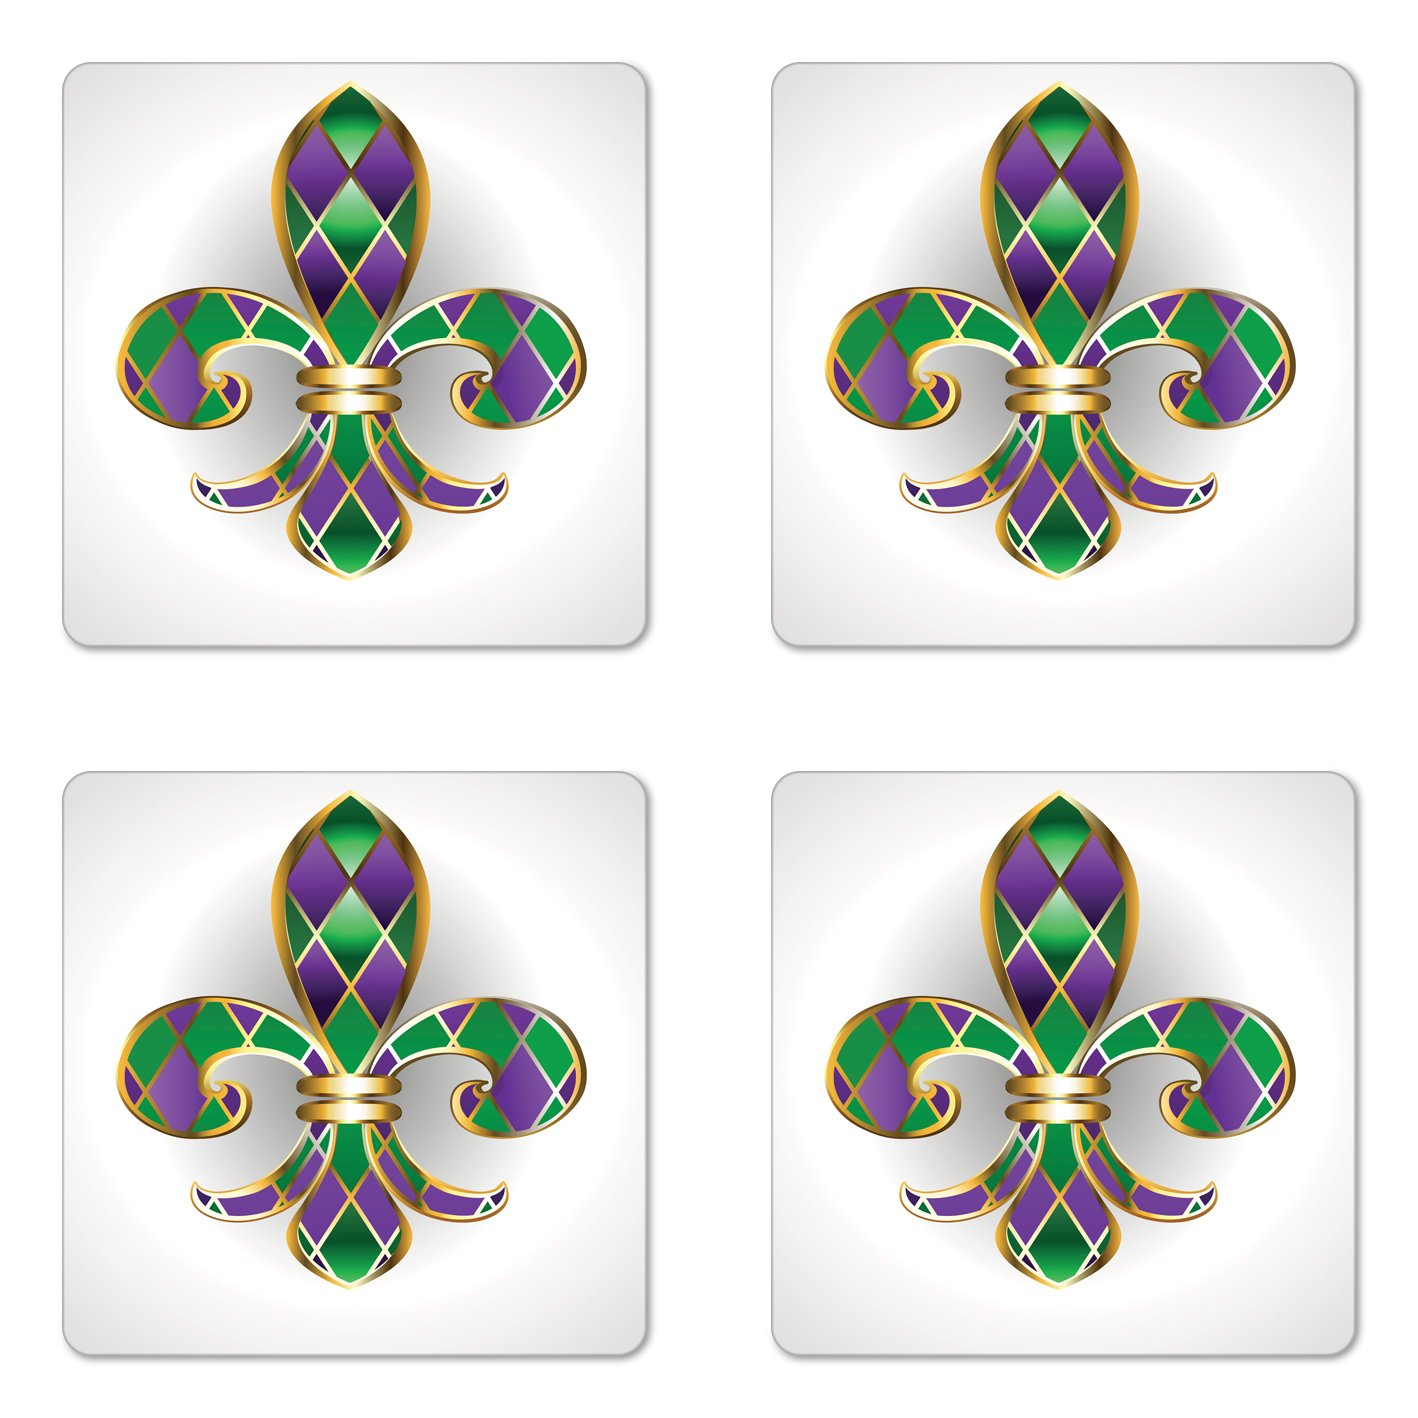 Ambesonne Fleur De Lis Coaster Set of Four, Golden Yellow Colored Lily Symbol with Diamond Shapes Royalty Theme Ancient, Square Hardboard Gloss Coasters for Drinks, Purple Green